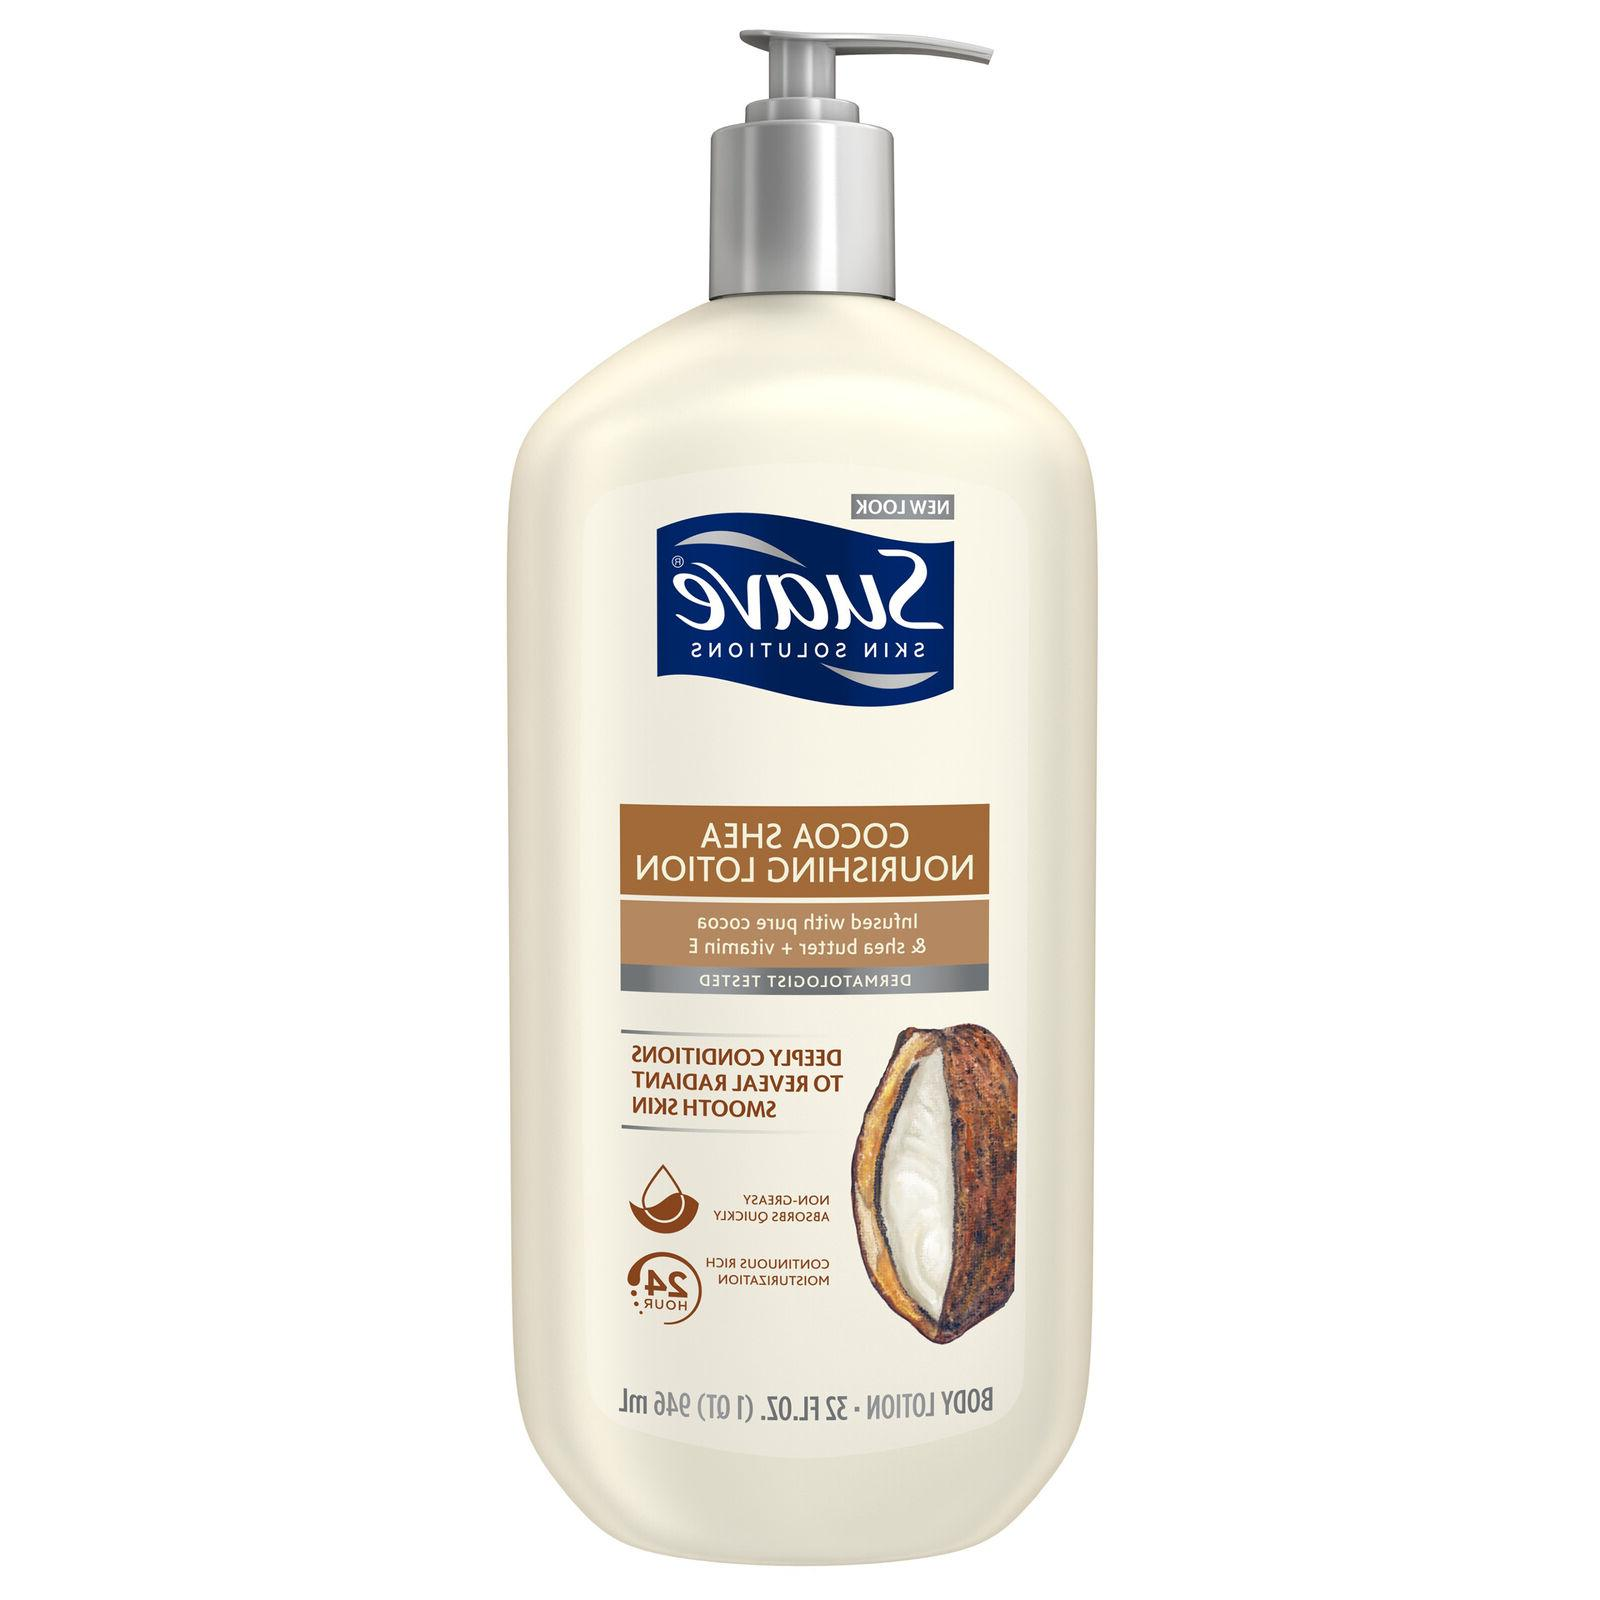 Suave Skin Solutions Body Lotion, Smoothing with Cocoa Butte